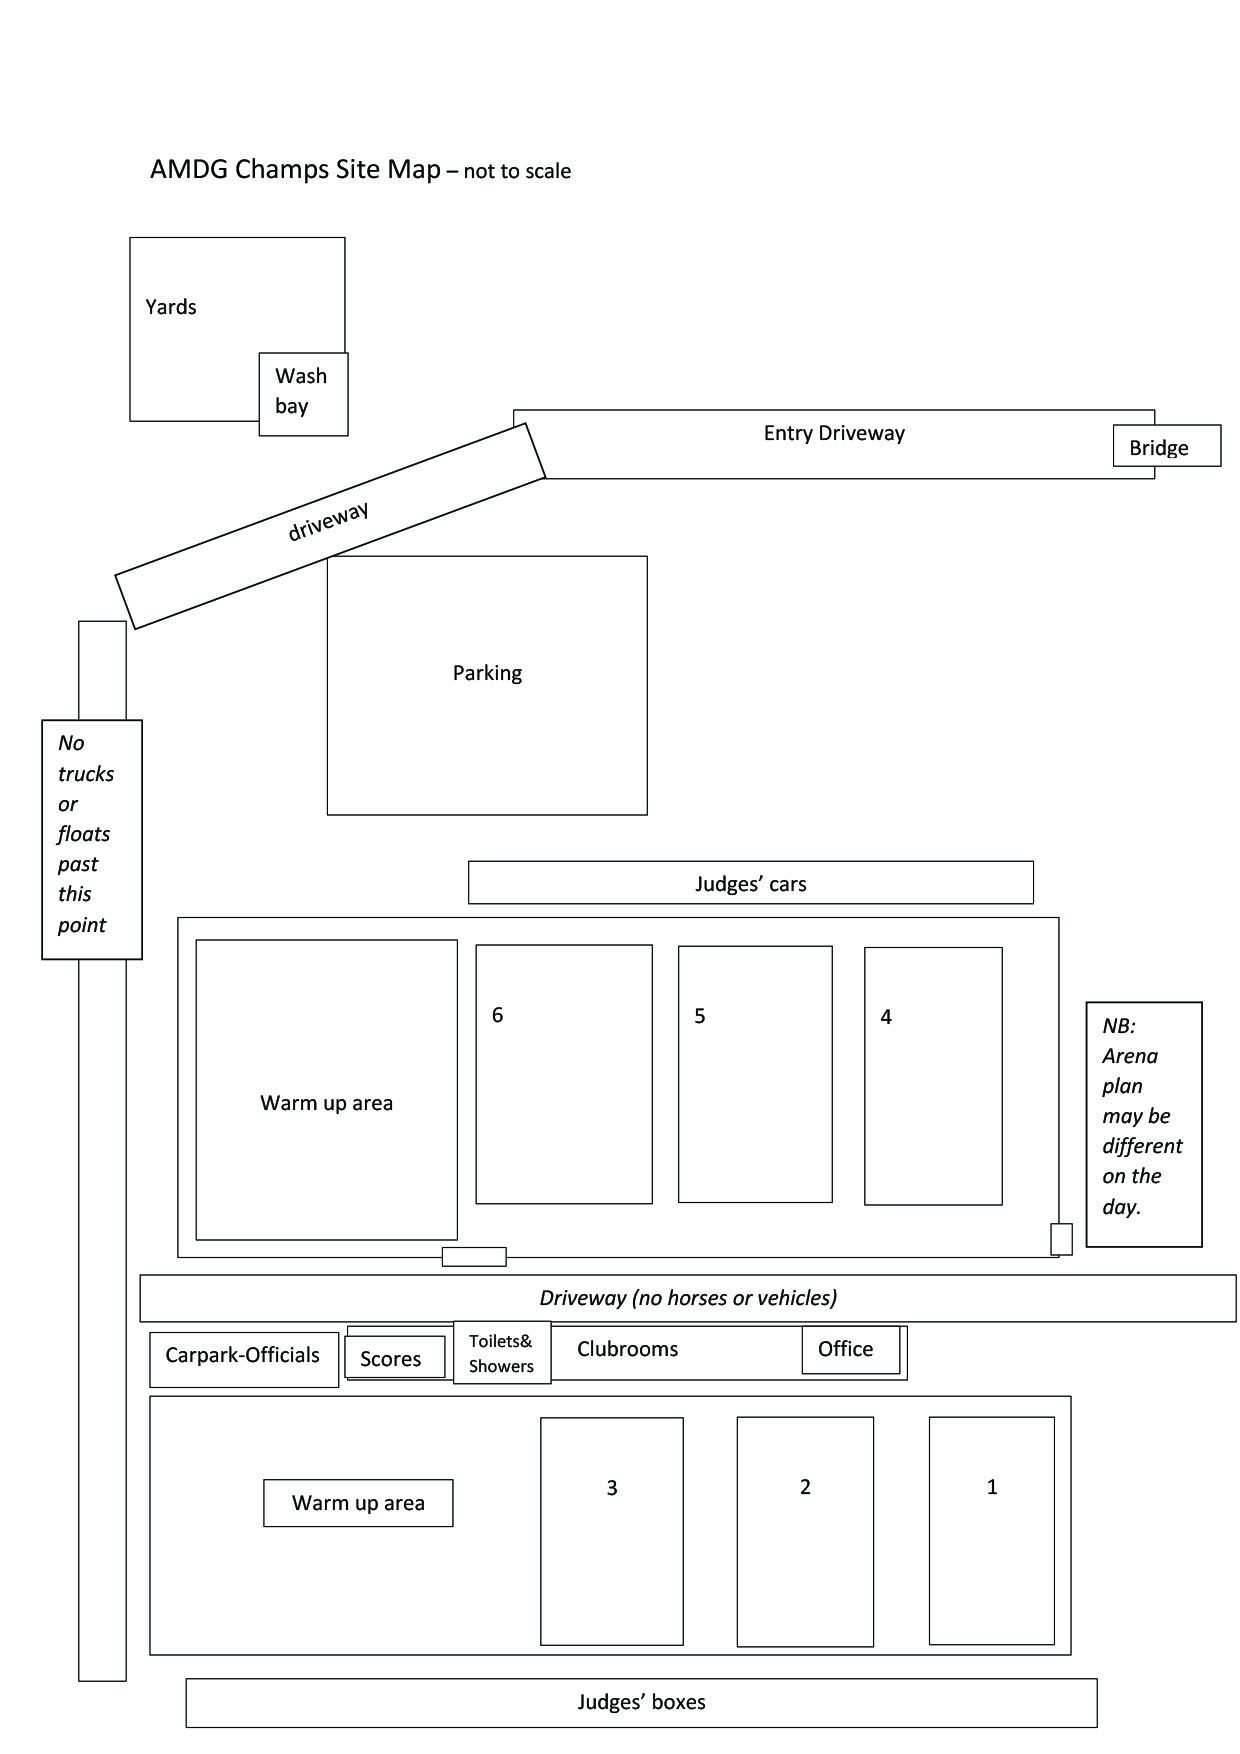 AMDG Site Map  (click to enlarge)